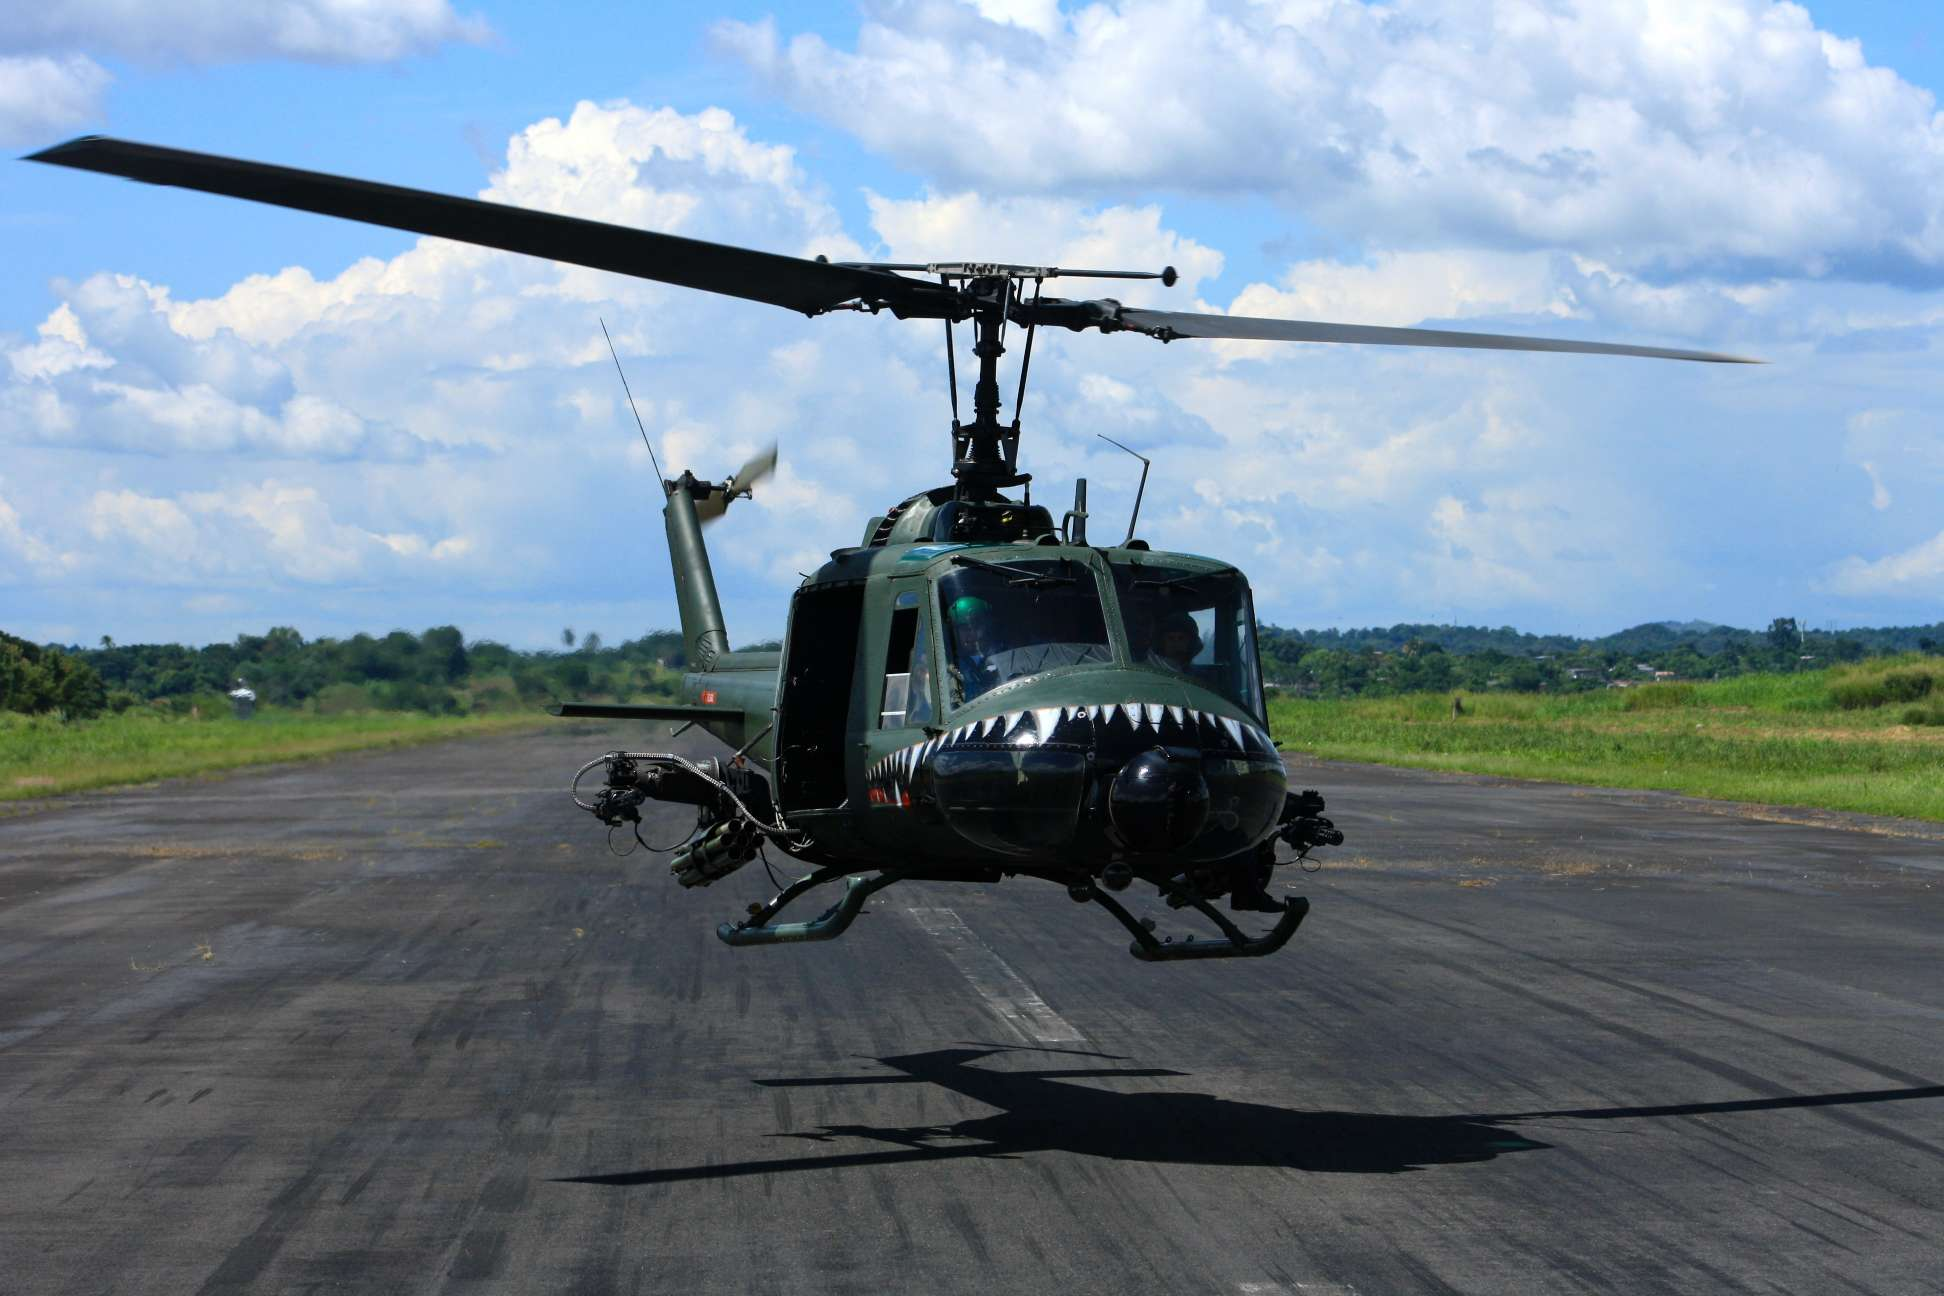 File:Bell UH-1 Iroquois of the El Salvador Air Force.jpg ...